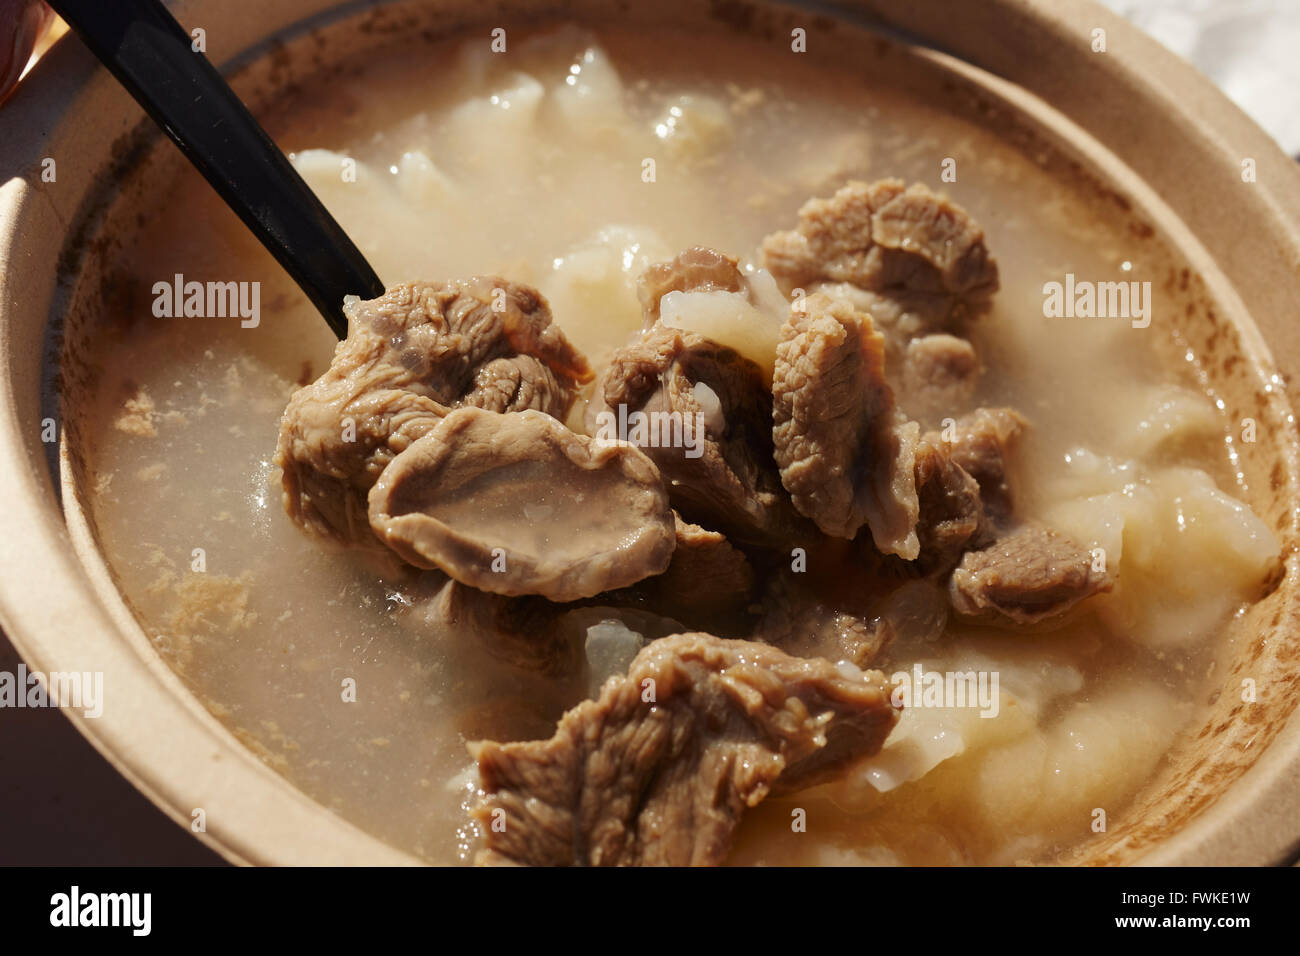 Navajo Mutton And Dumpling Soup From A Food Truck At Tuba City Stock